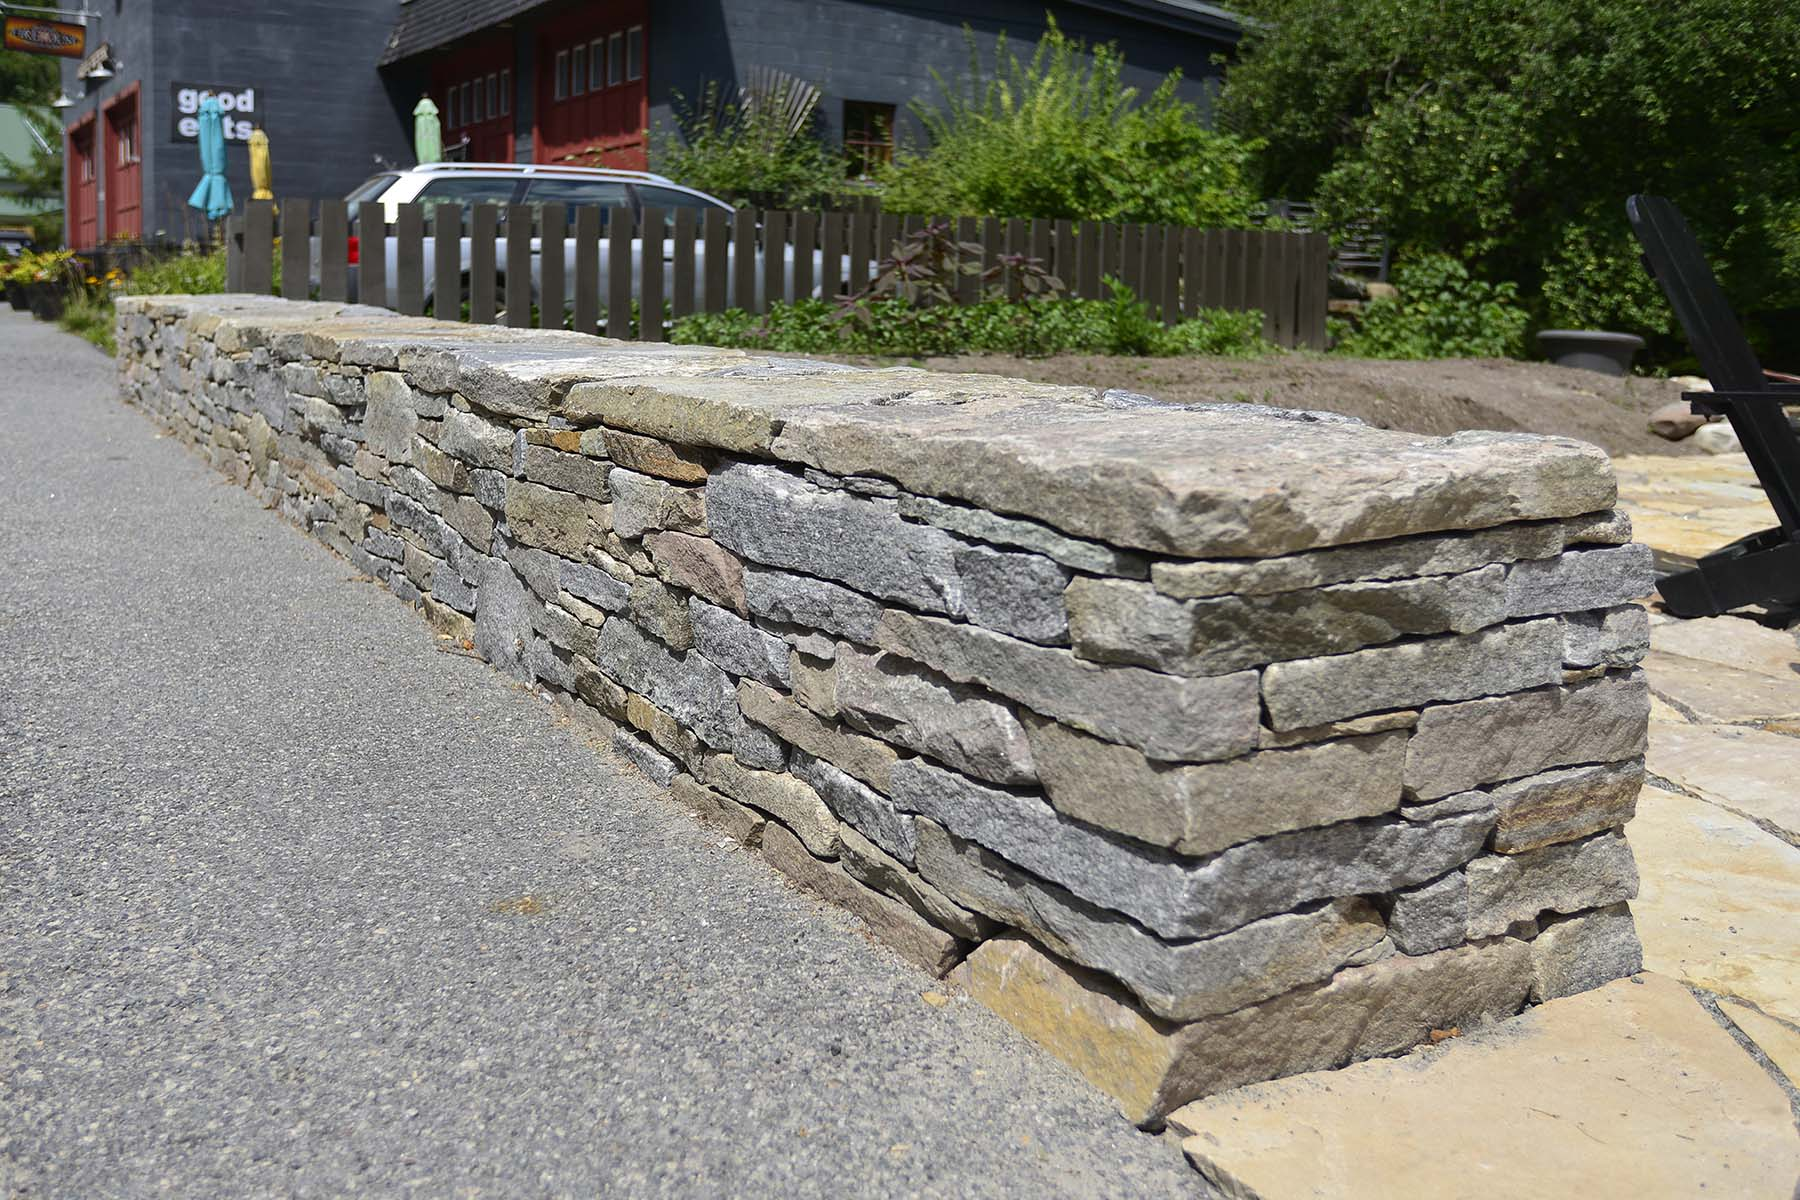 natural stone Ticonderoga granite wall outside business